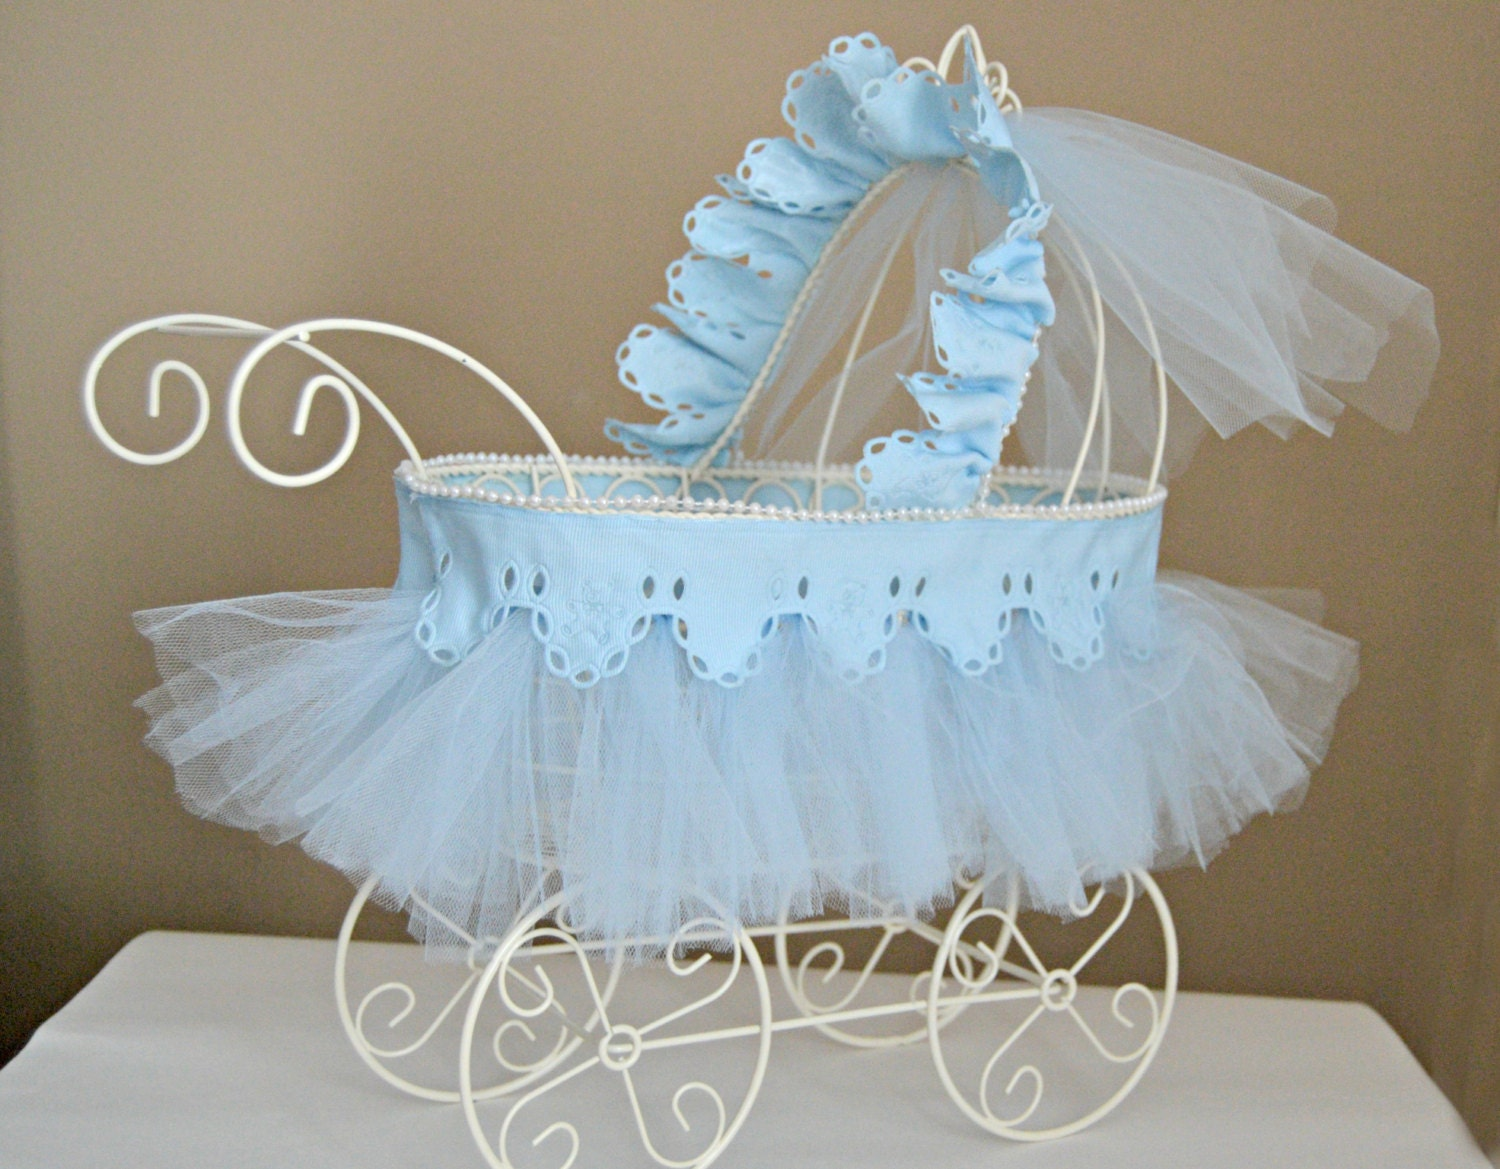 Baby Carriage Nursery Decor Baby Shower Centerpiece Vintage